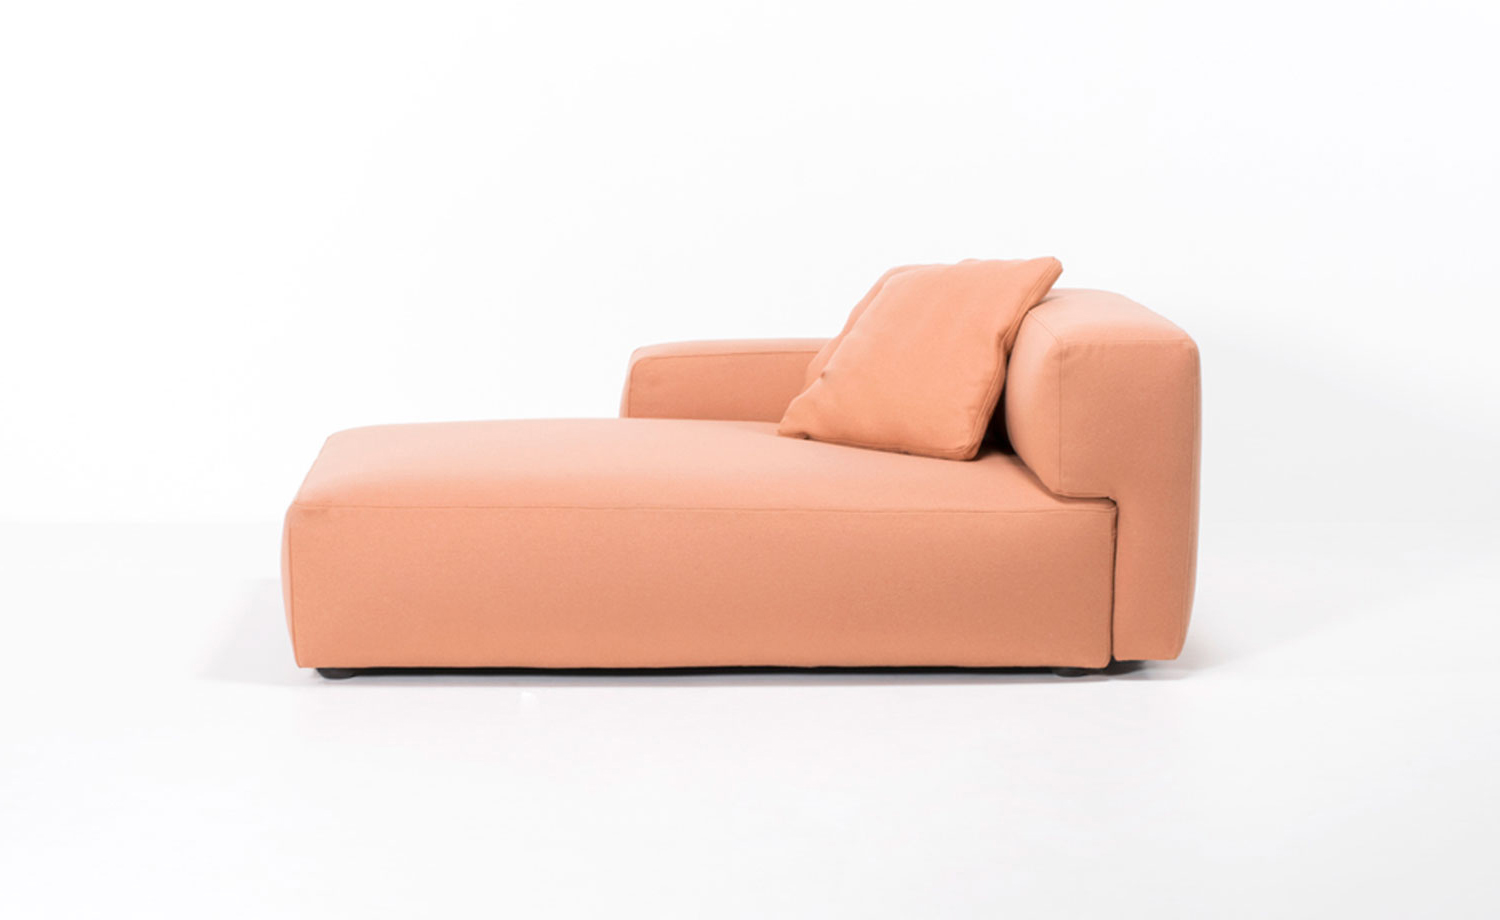 EXPO chaise longue image #7